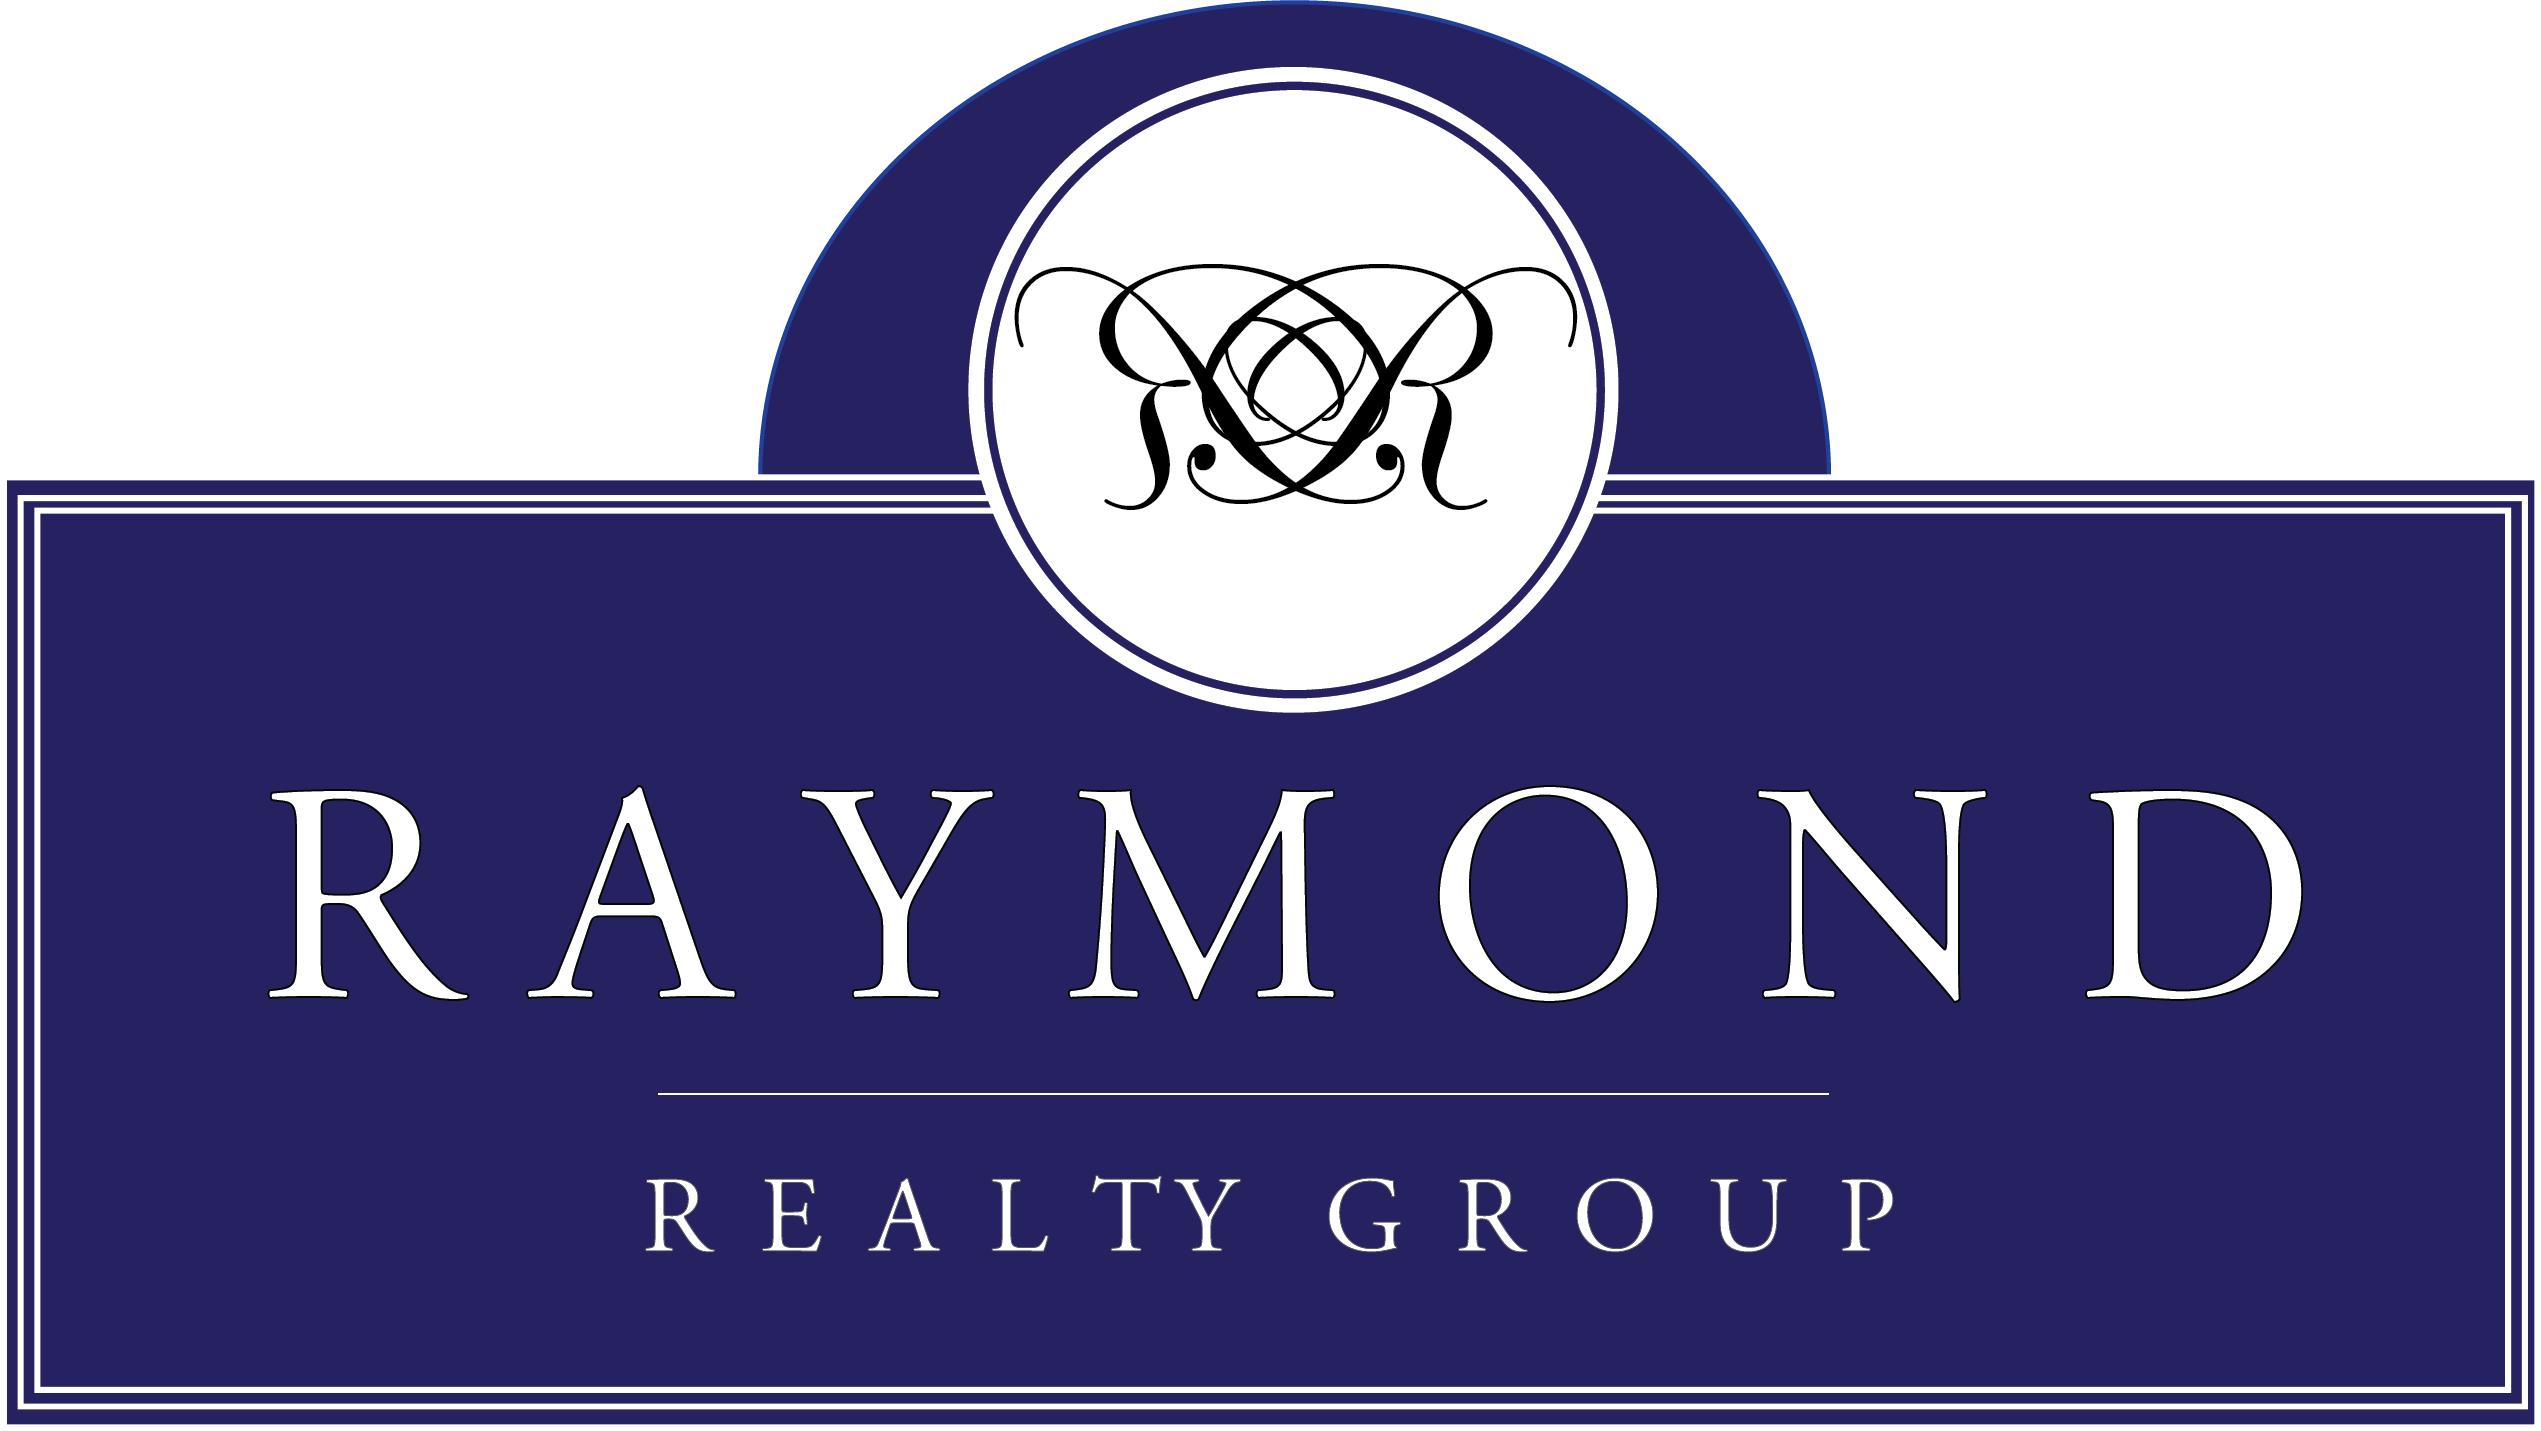 Raymond Realty Group